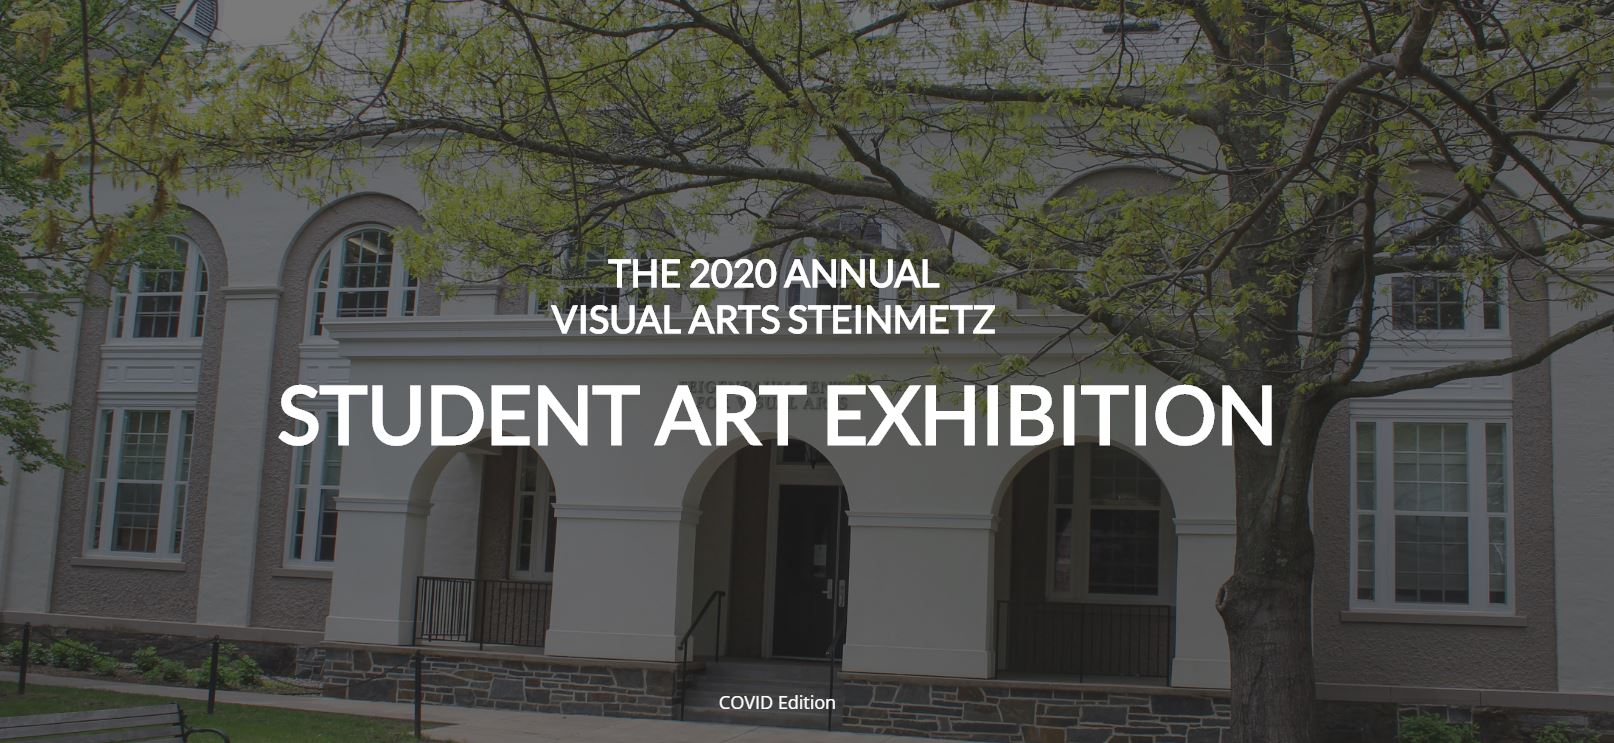 Visual Arts Steinmetz Student Art Exhibition